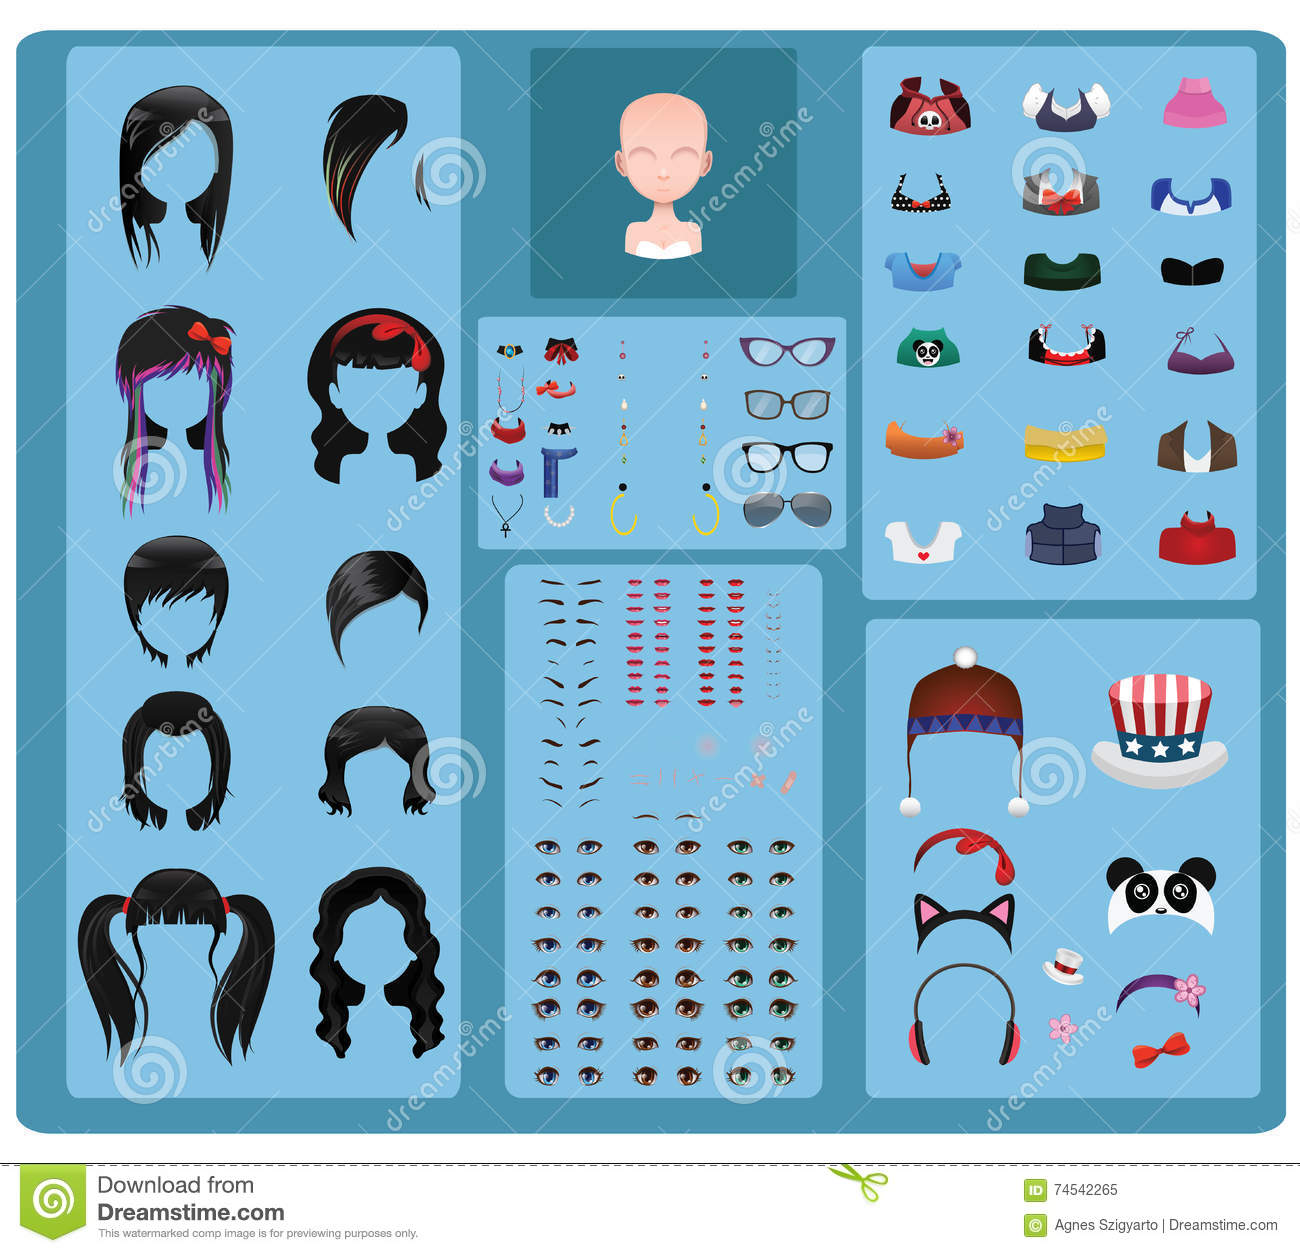 Female Avatar Maker - Black Hair Stock Vector - Illustration of hats